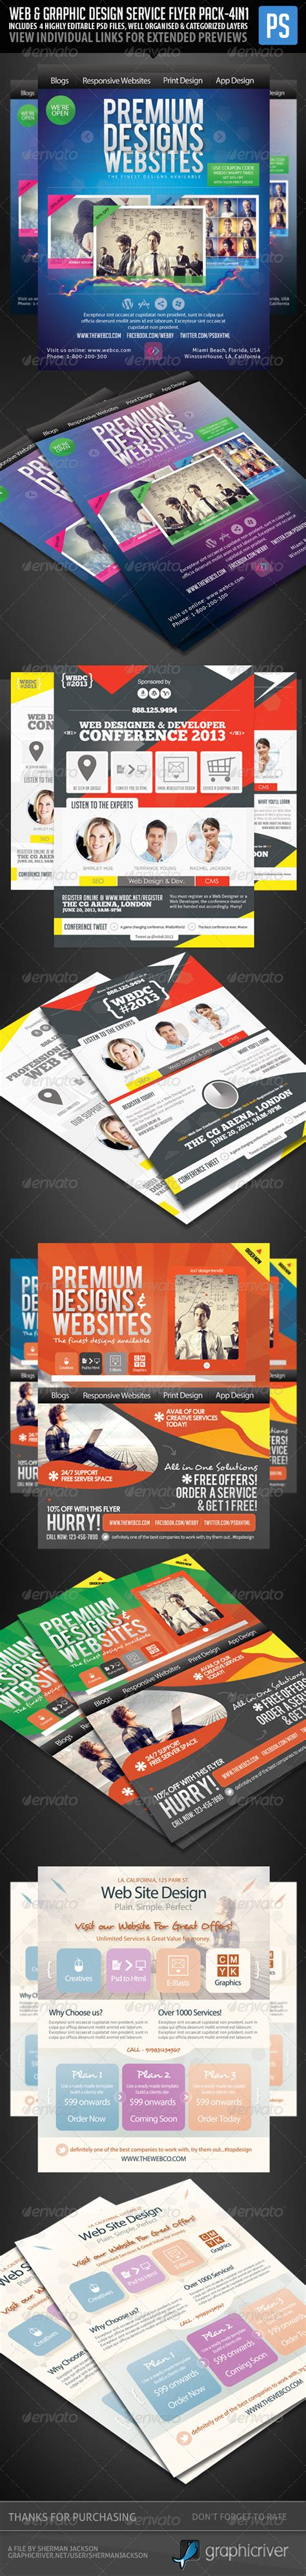 Webe Set 4in1 catering service psd flyer templates free